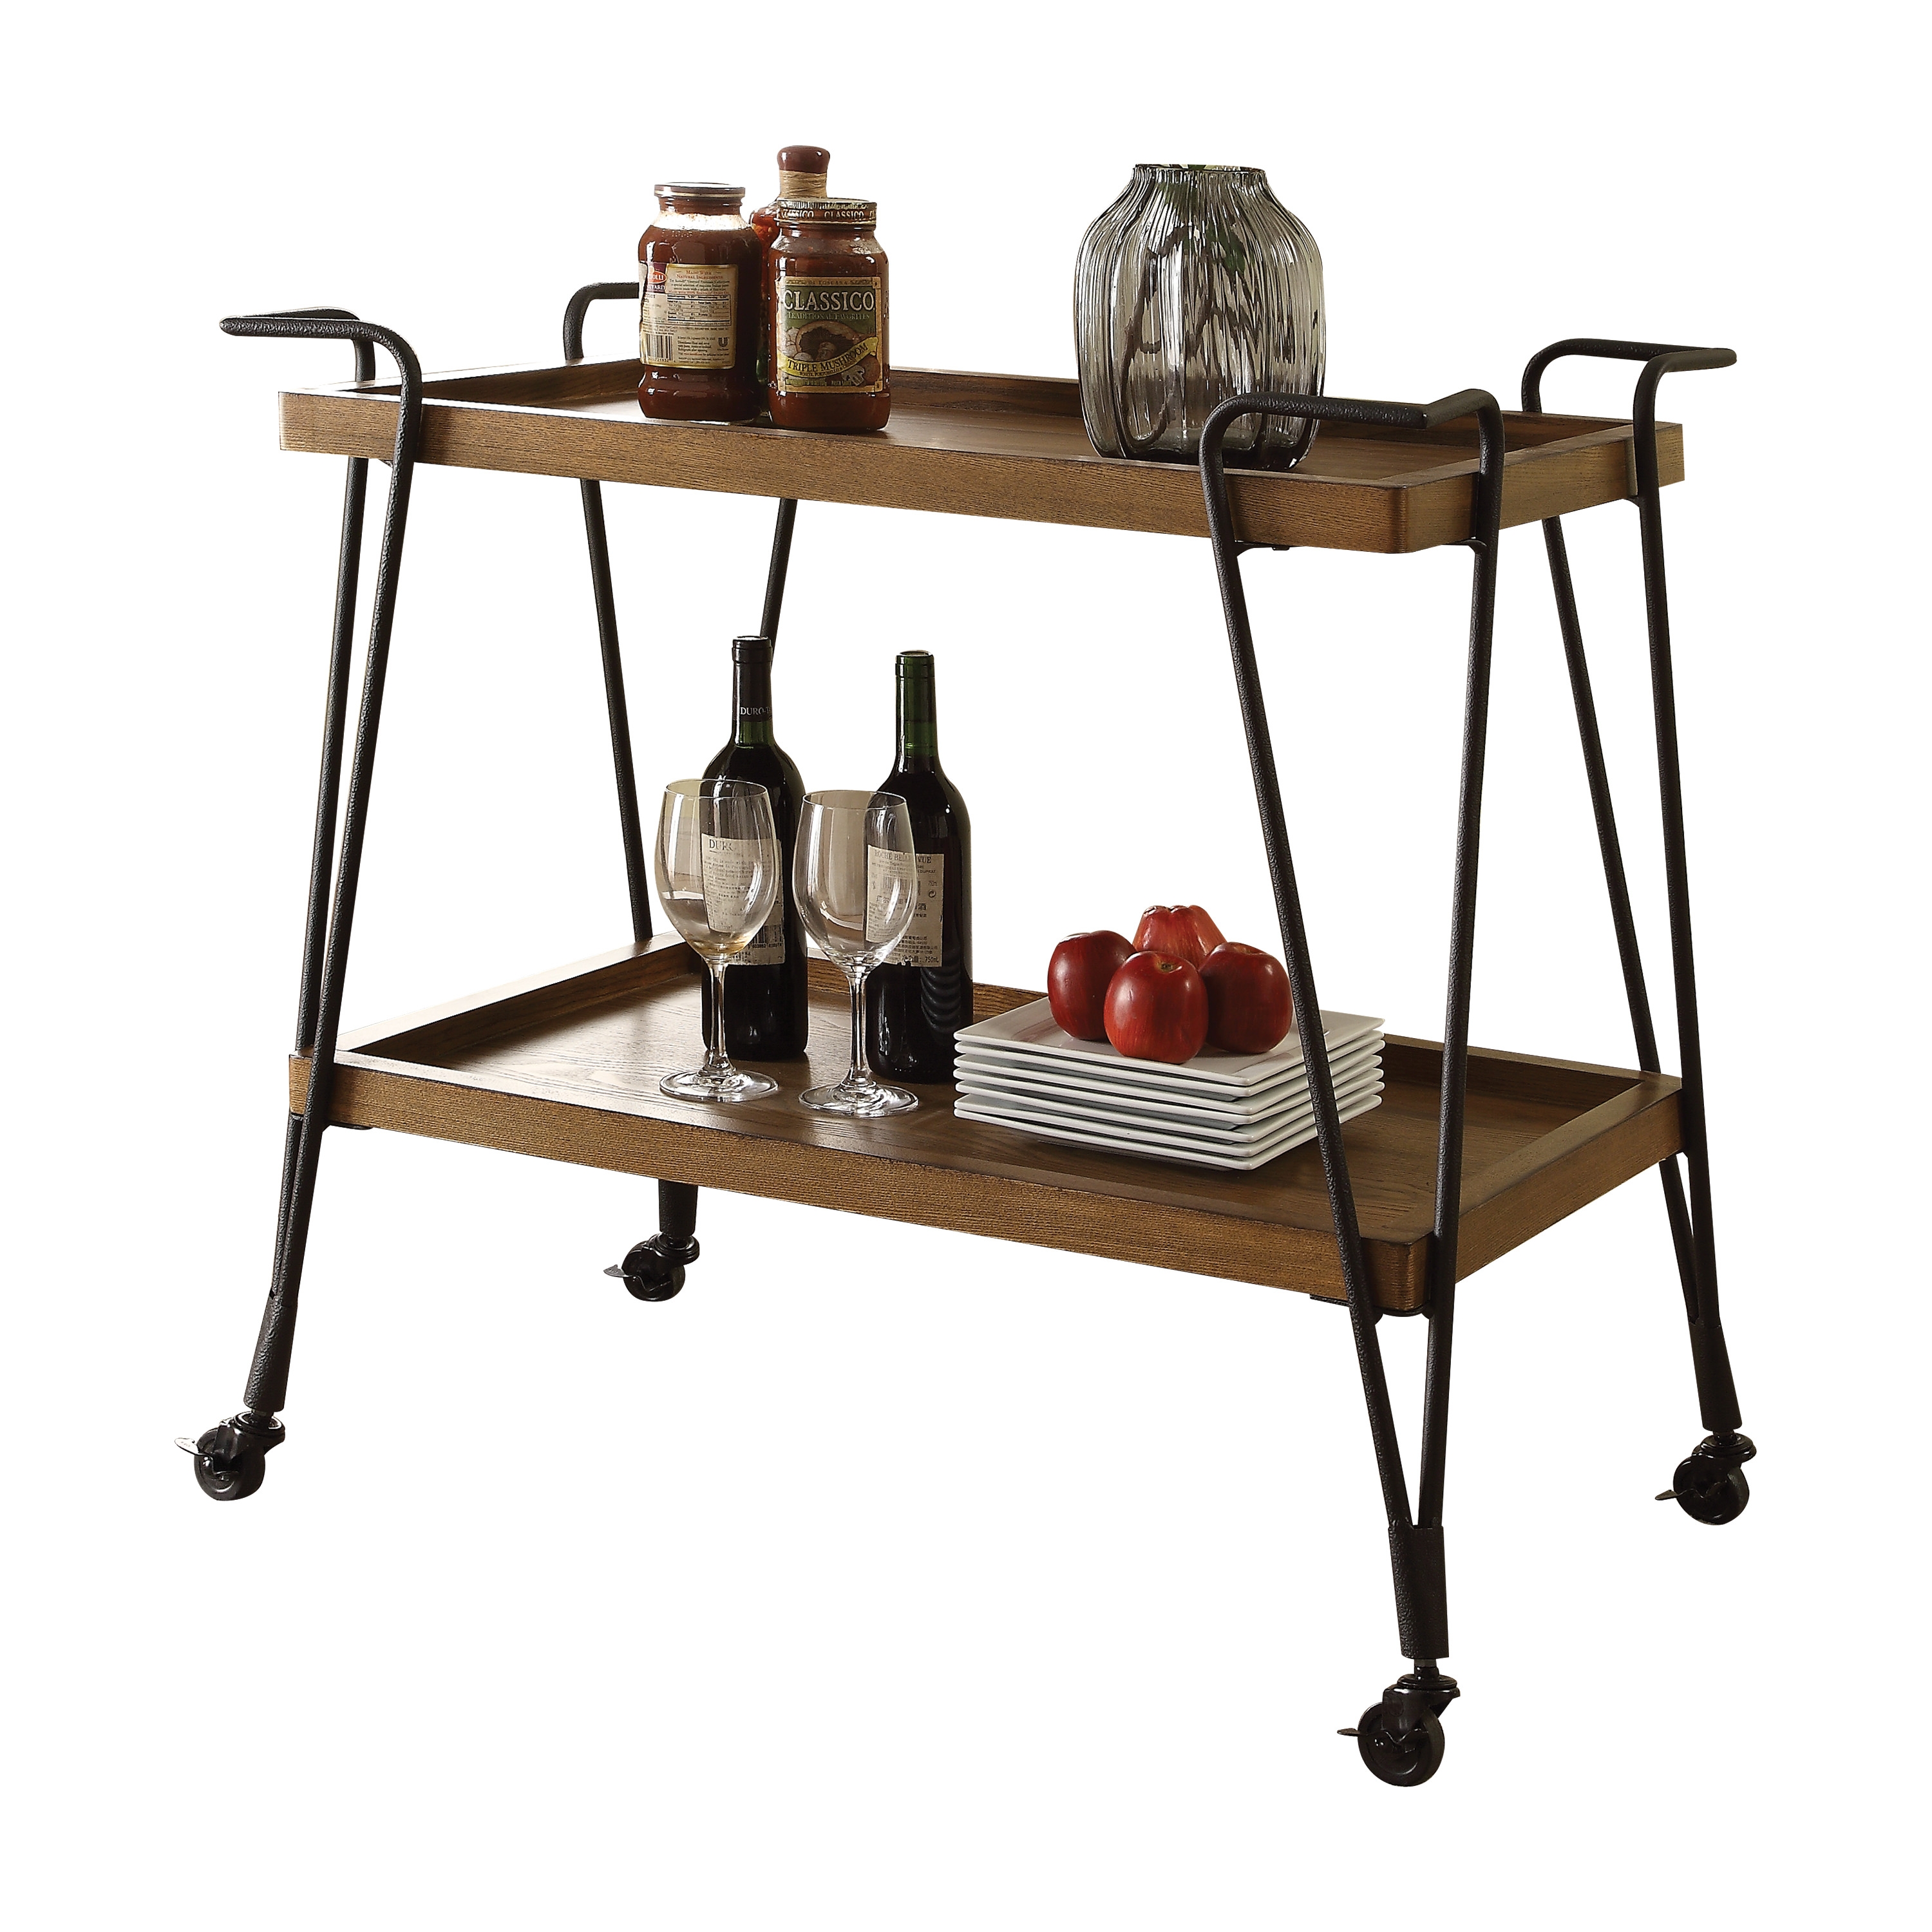 ACME Morais 2 Tiers Serving Cart in Oak and Black by Acme Furniture